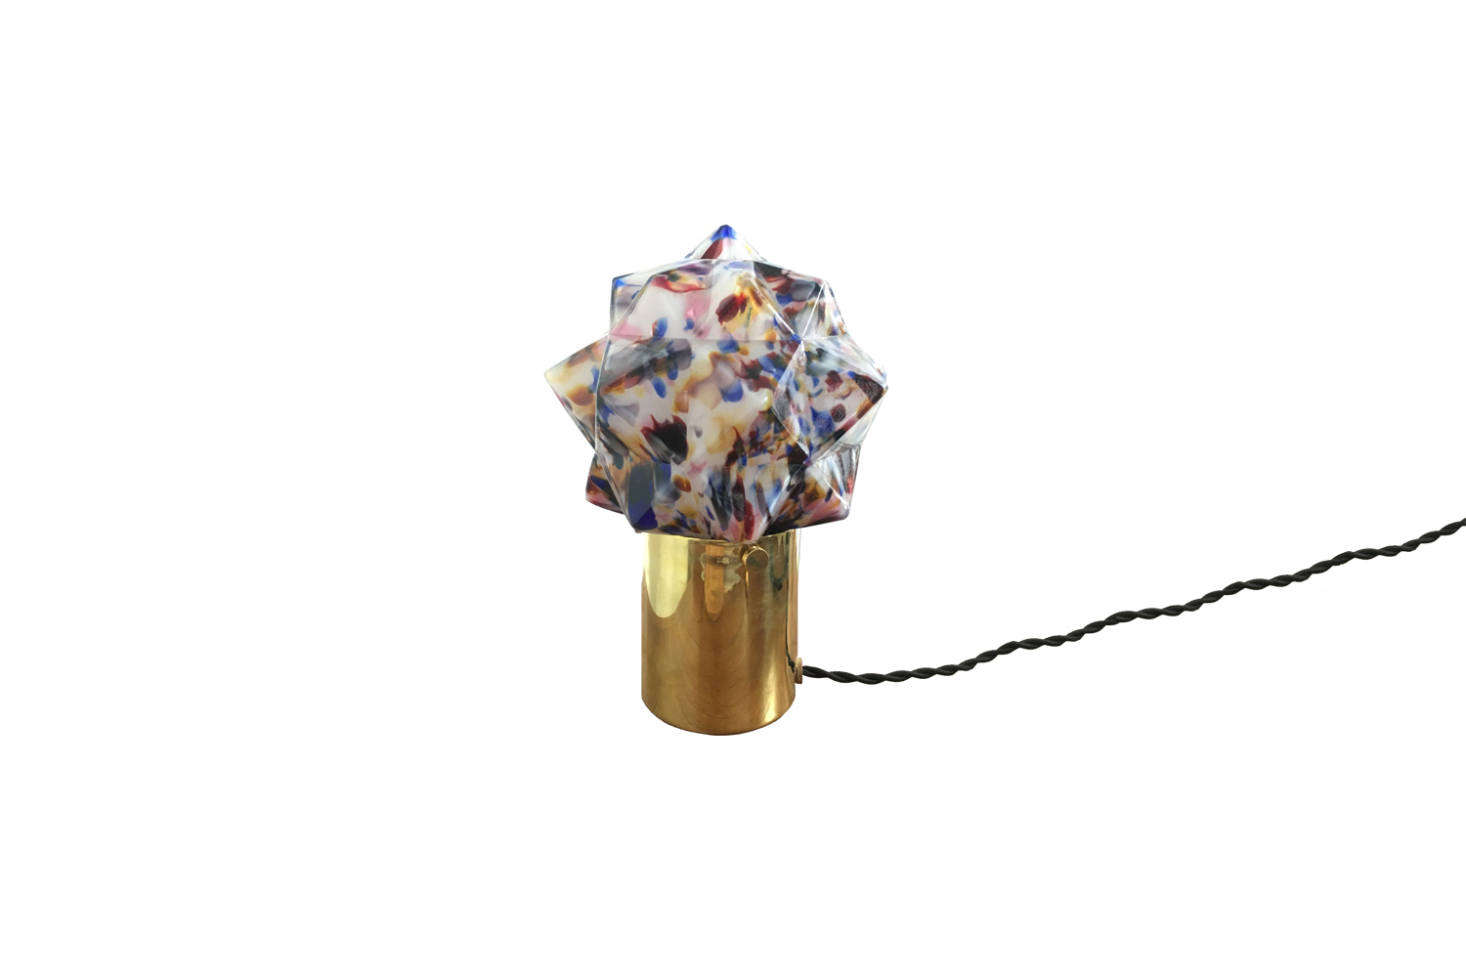 The Penelope August Star Table Lamp is the designer's own design and is made with vintage Czech glass and an unlacquered brass base for $975 direct from Penelope August.